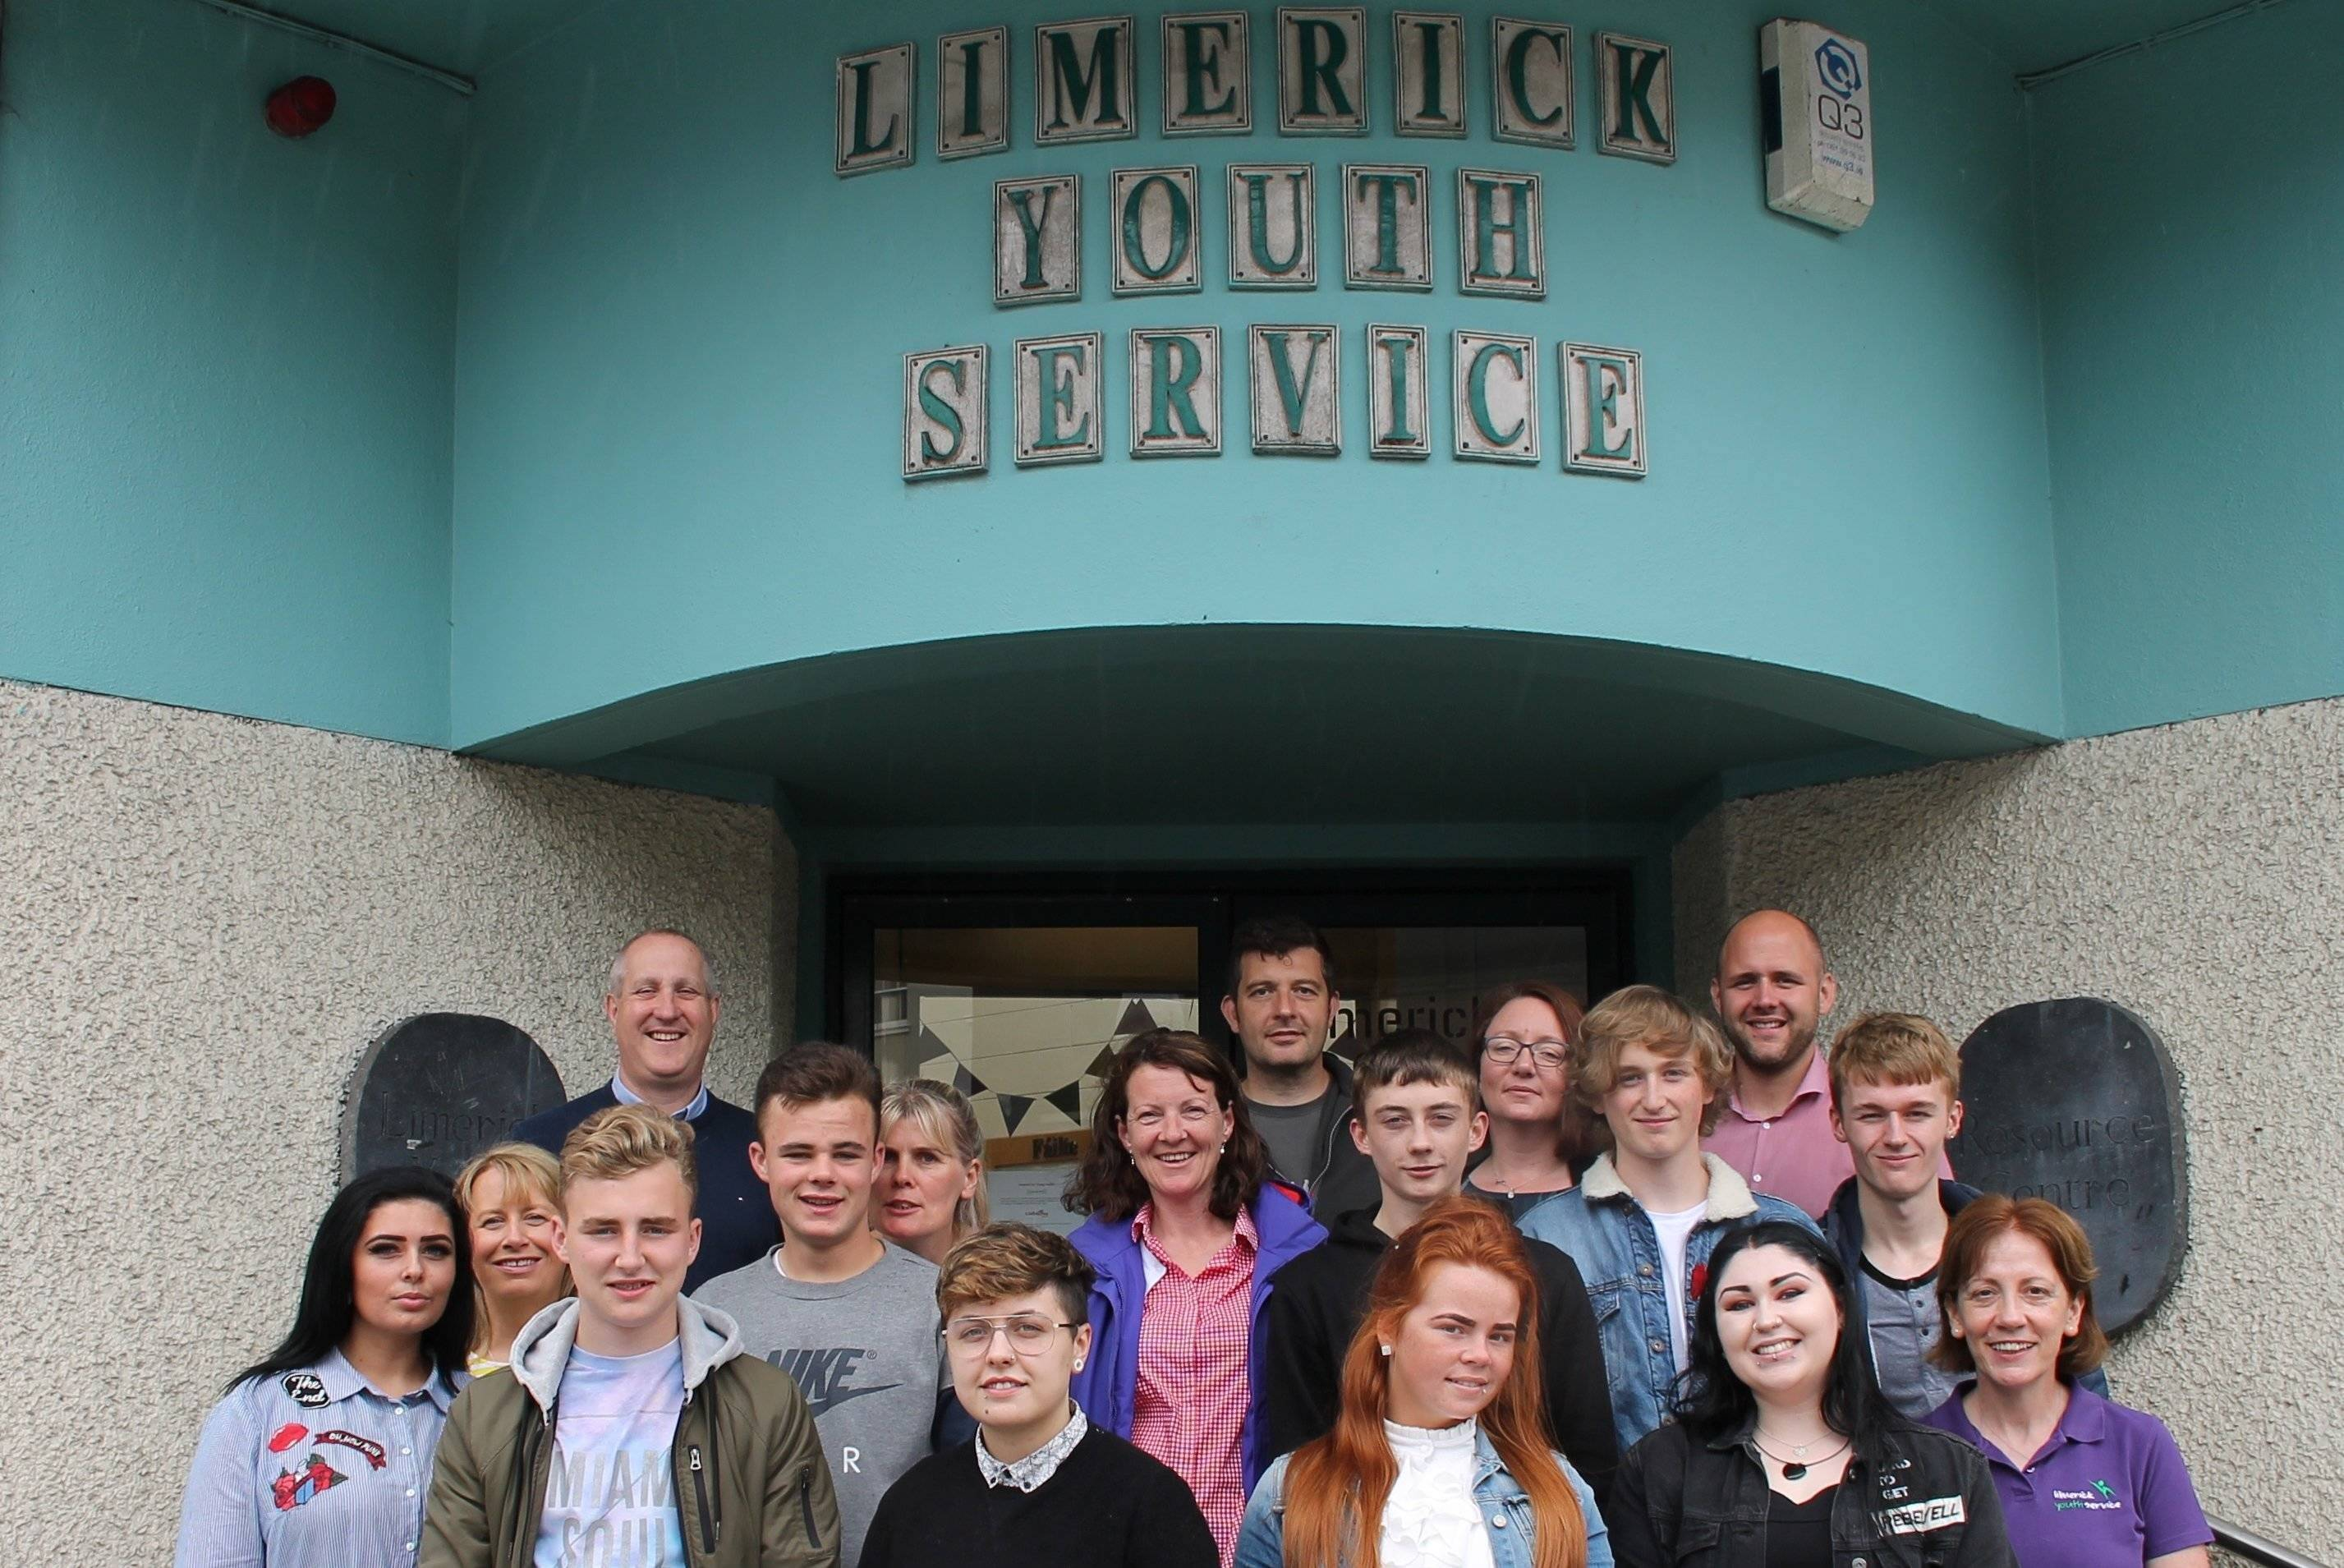 Limerick Youth Service Leaving Cert Applied class